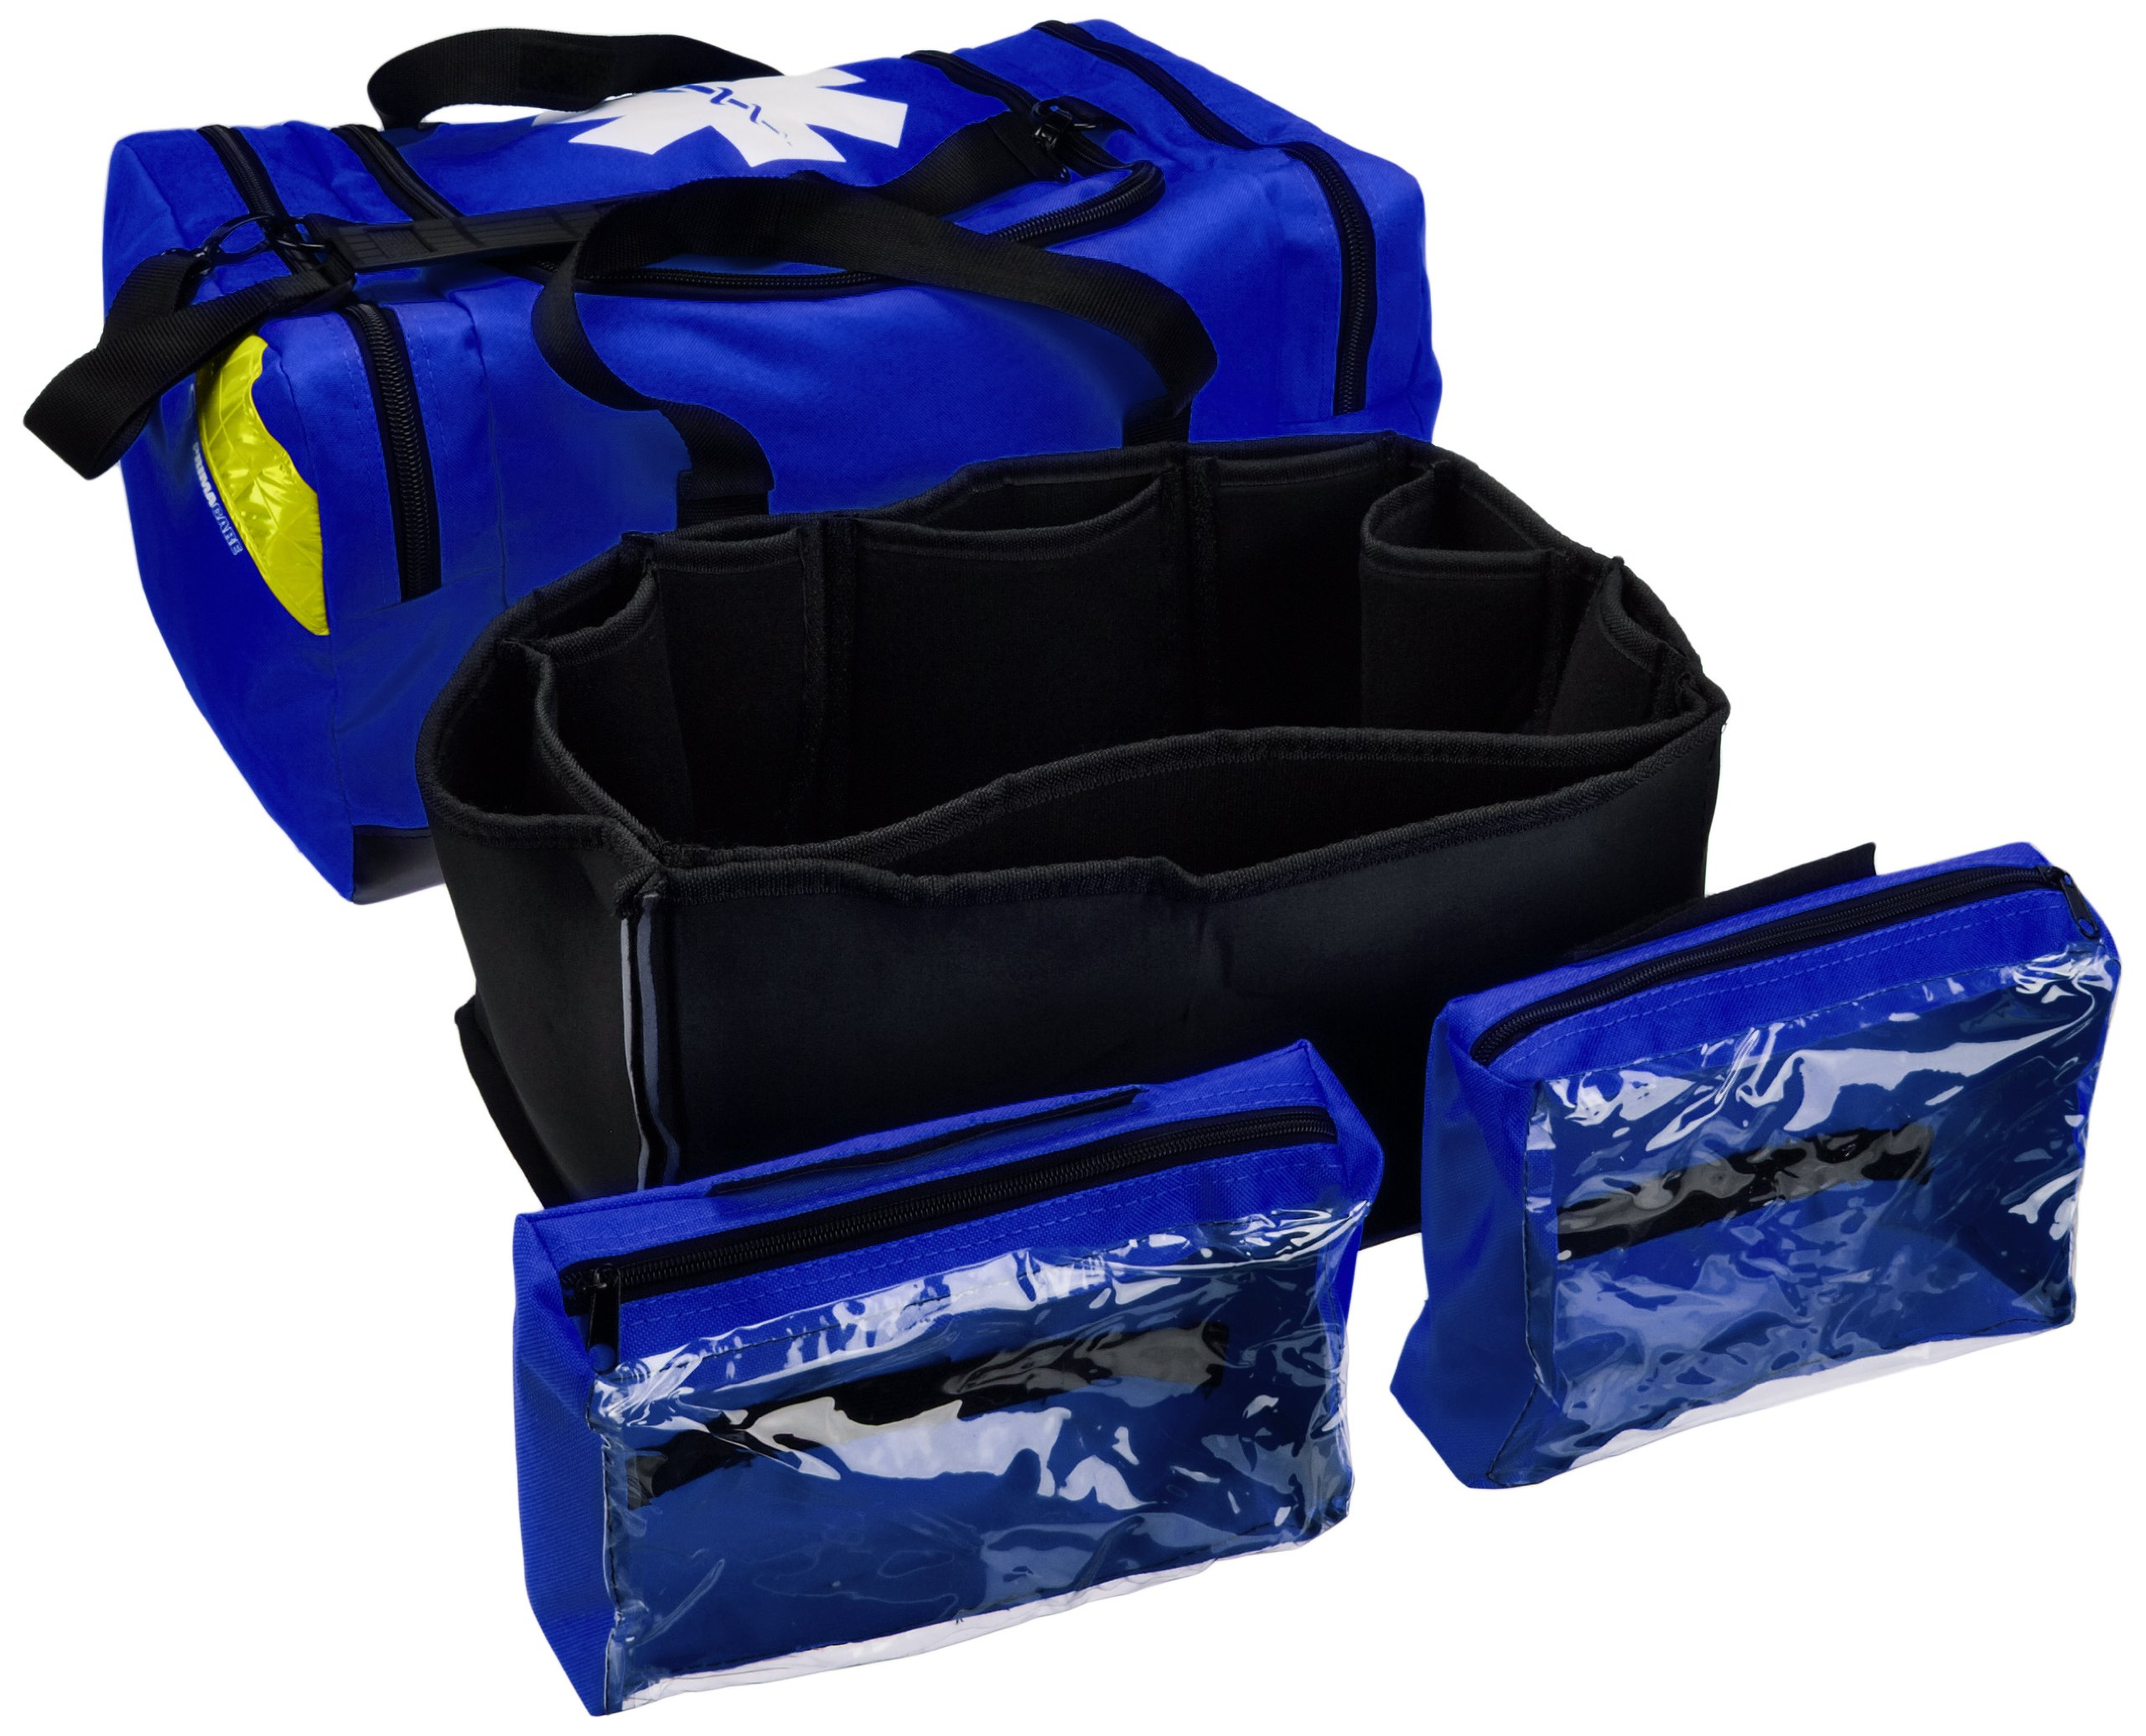 Primacare KB-4135-B First Responder Bag, 9'' Height x 21'' Width x 12'' Depth, Blue